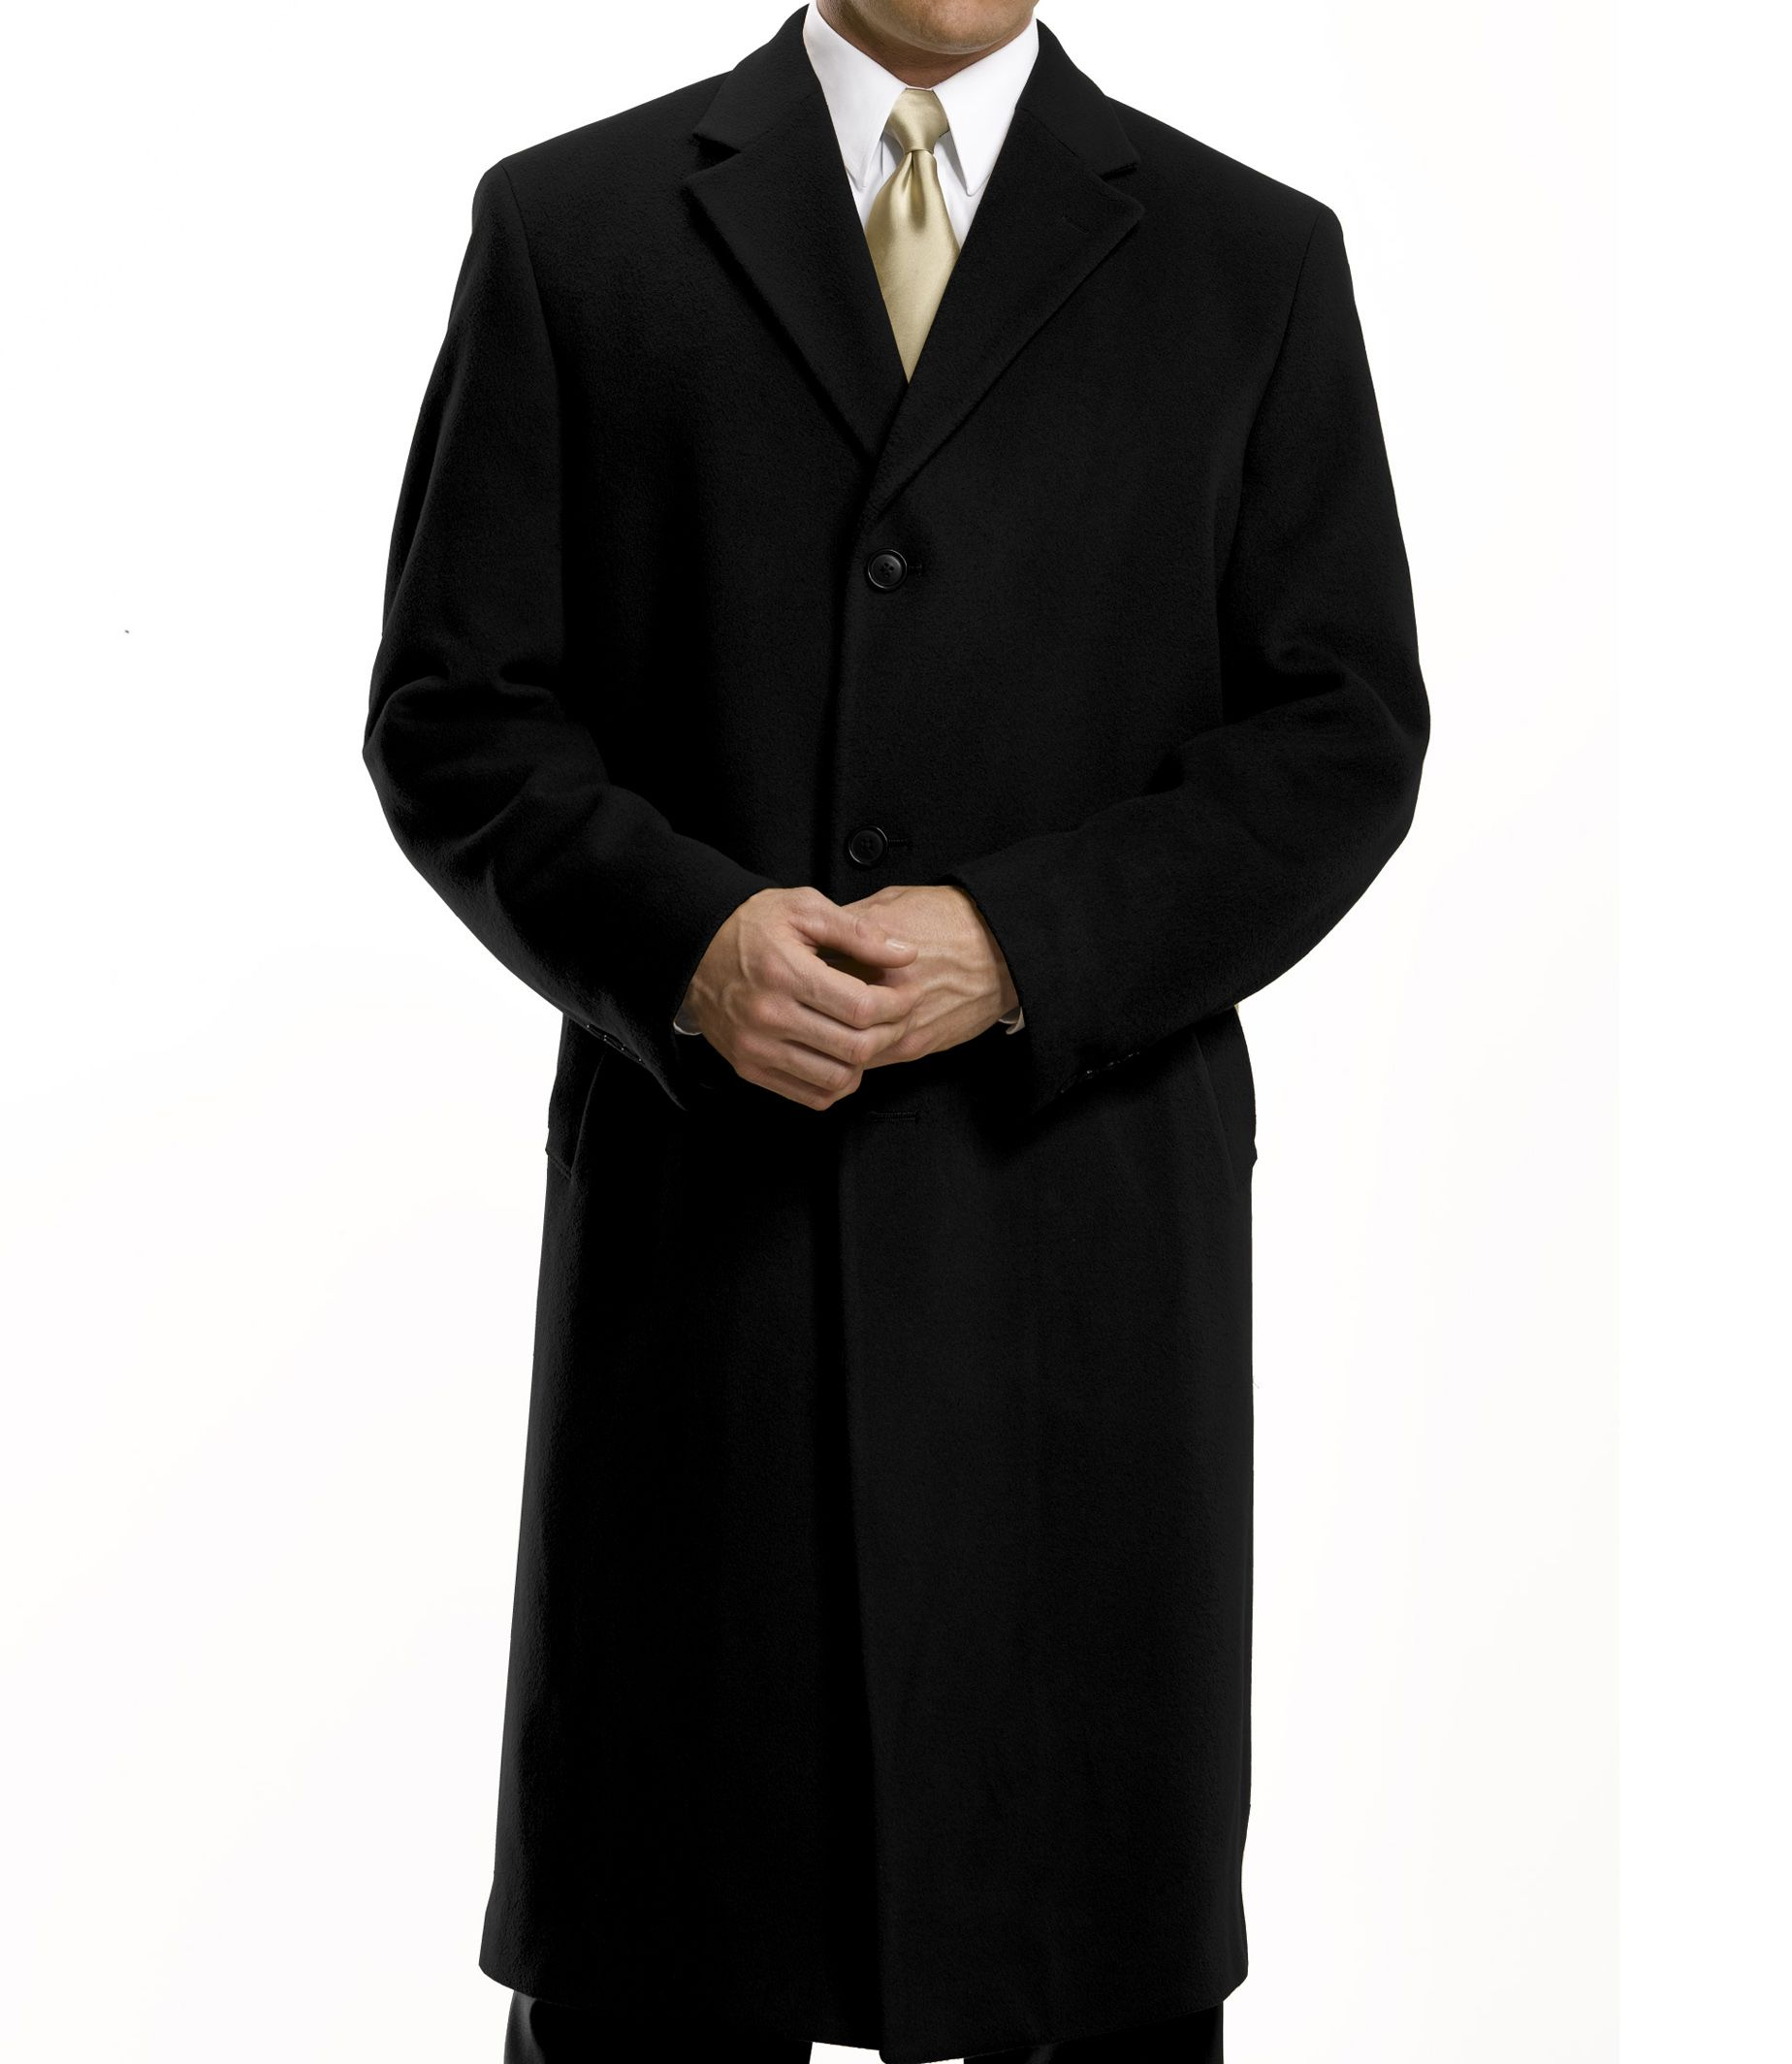 Executive Full Length Merino Wool Topcoat CLEARANCE - All